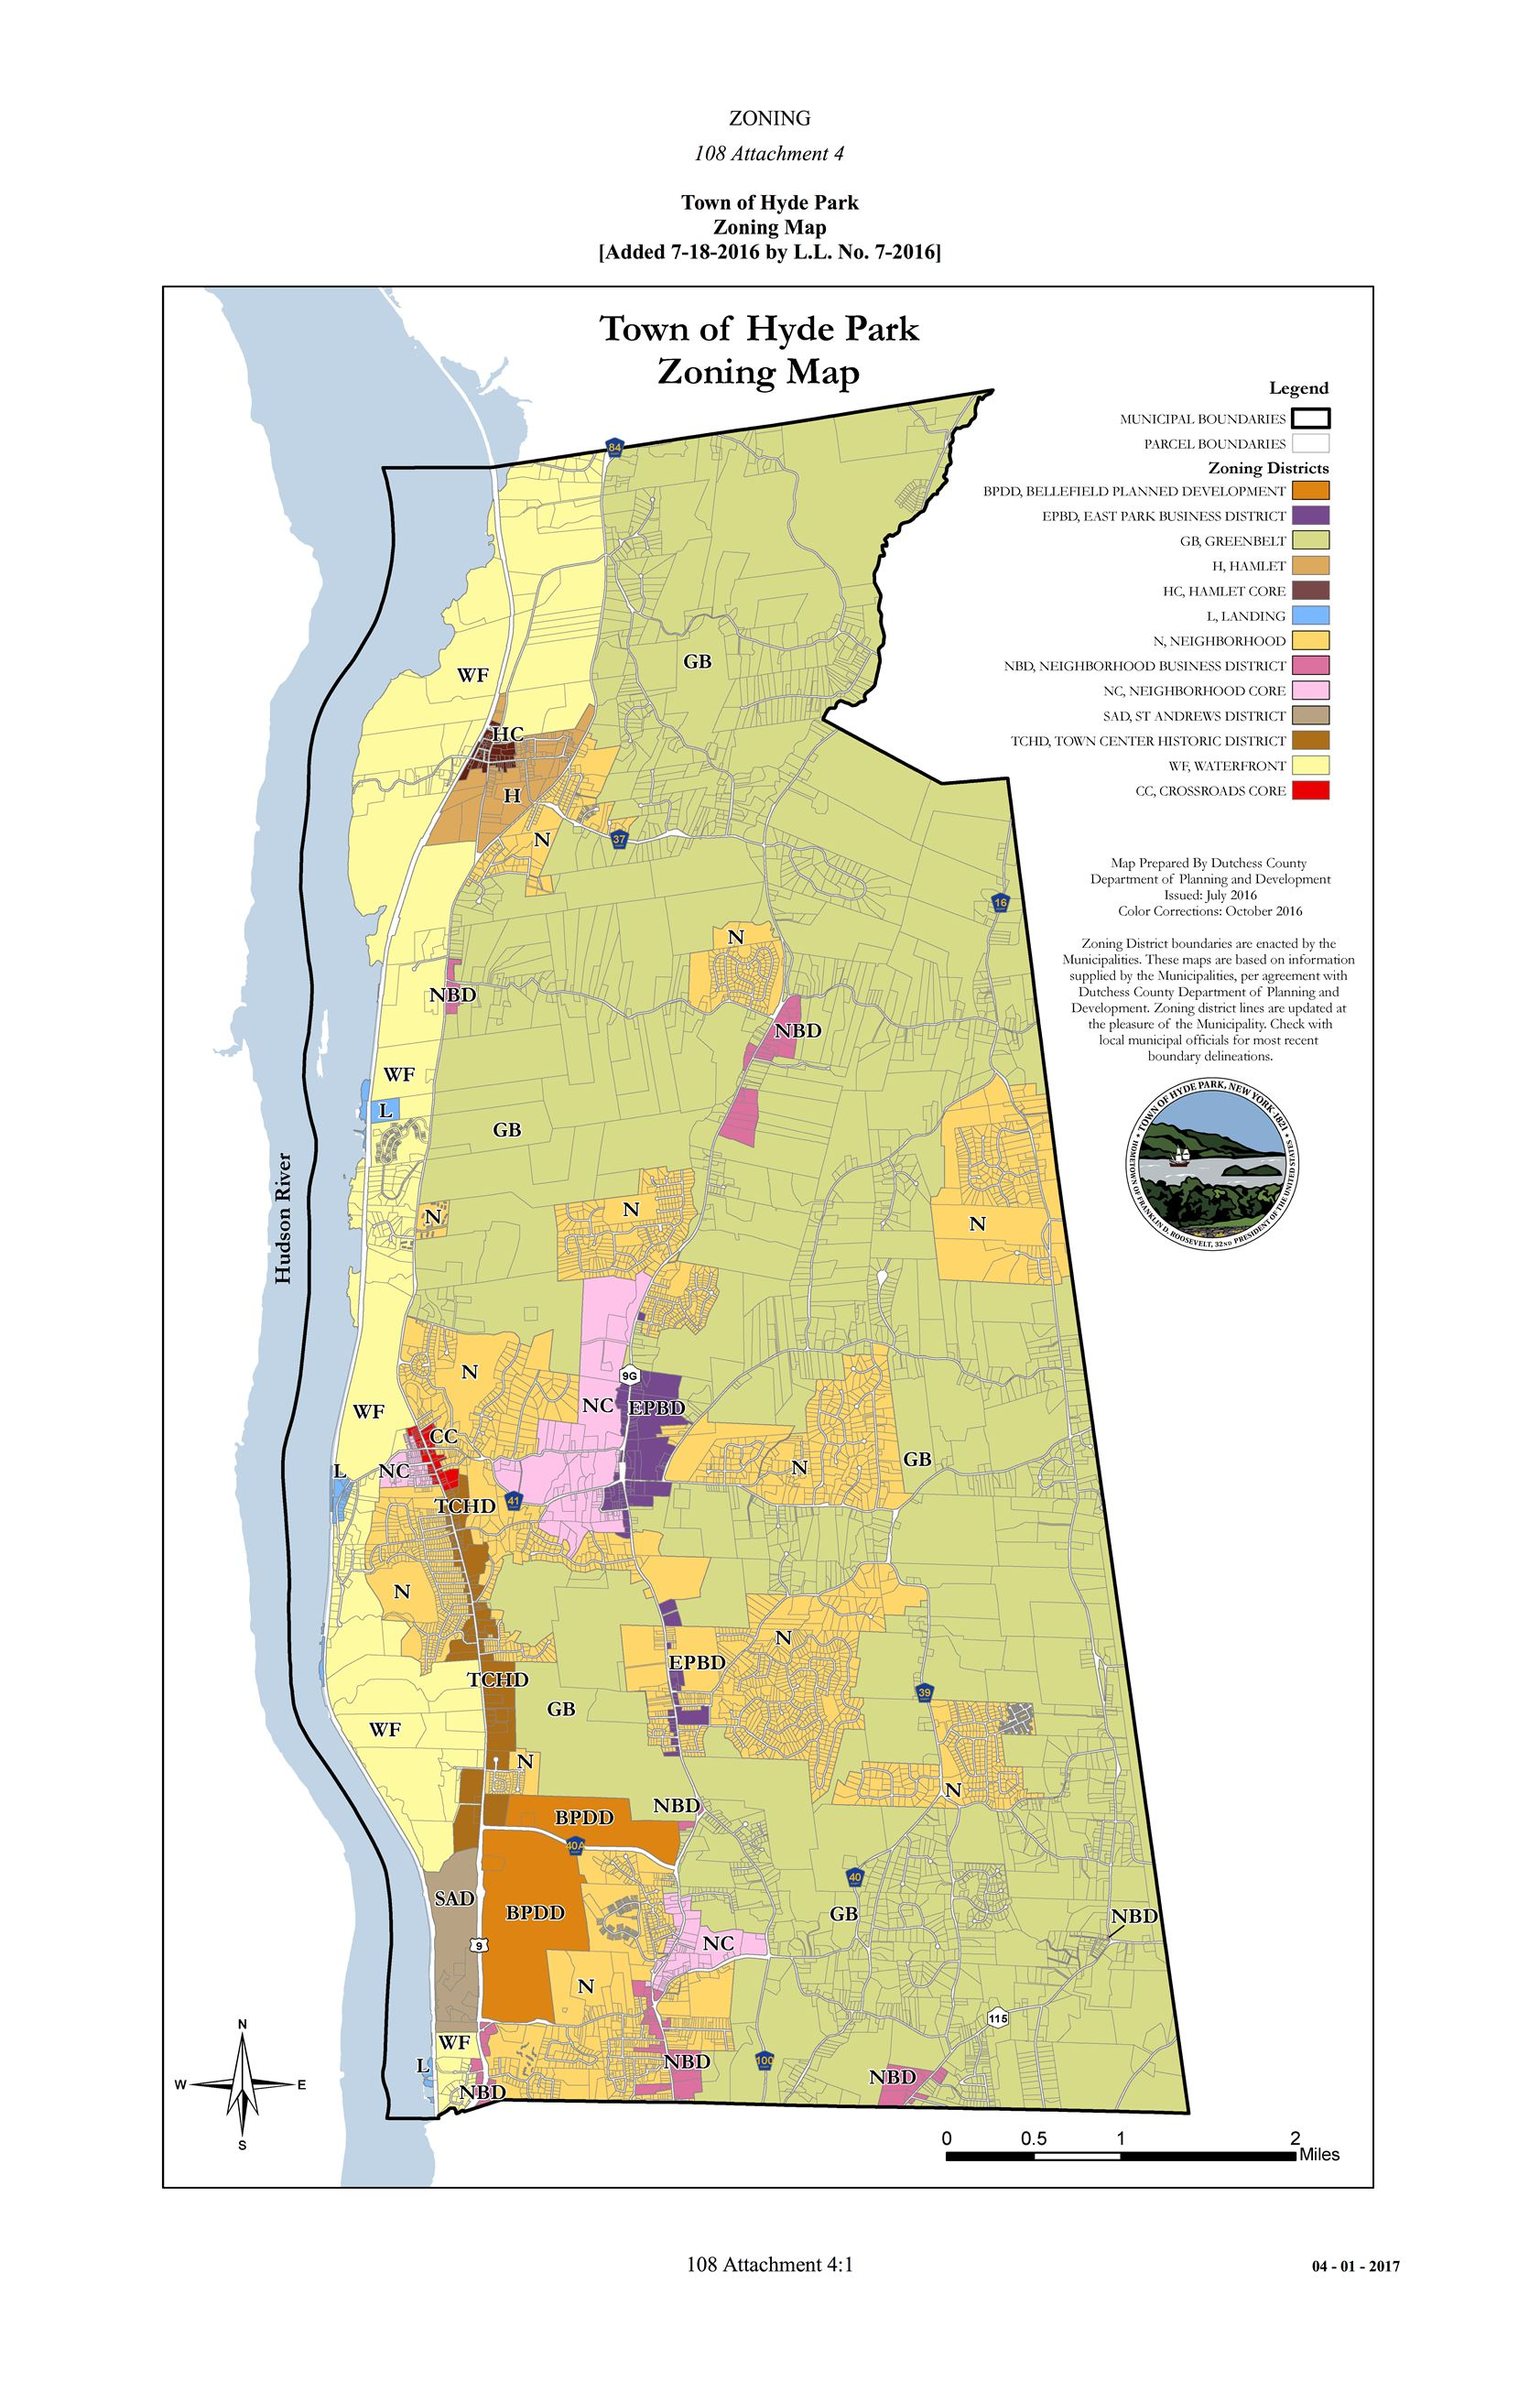 Town-of Hyde Park Zoning Map